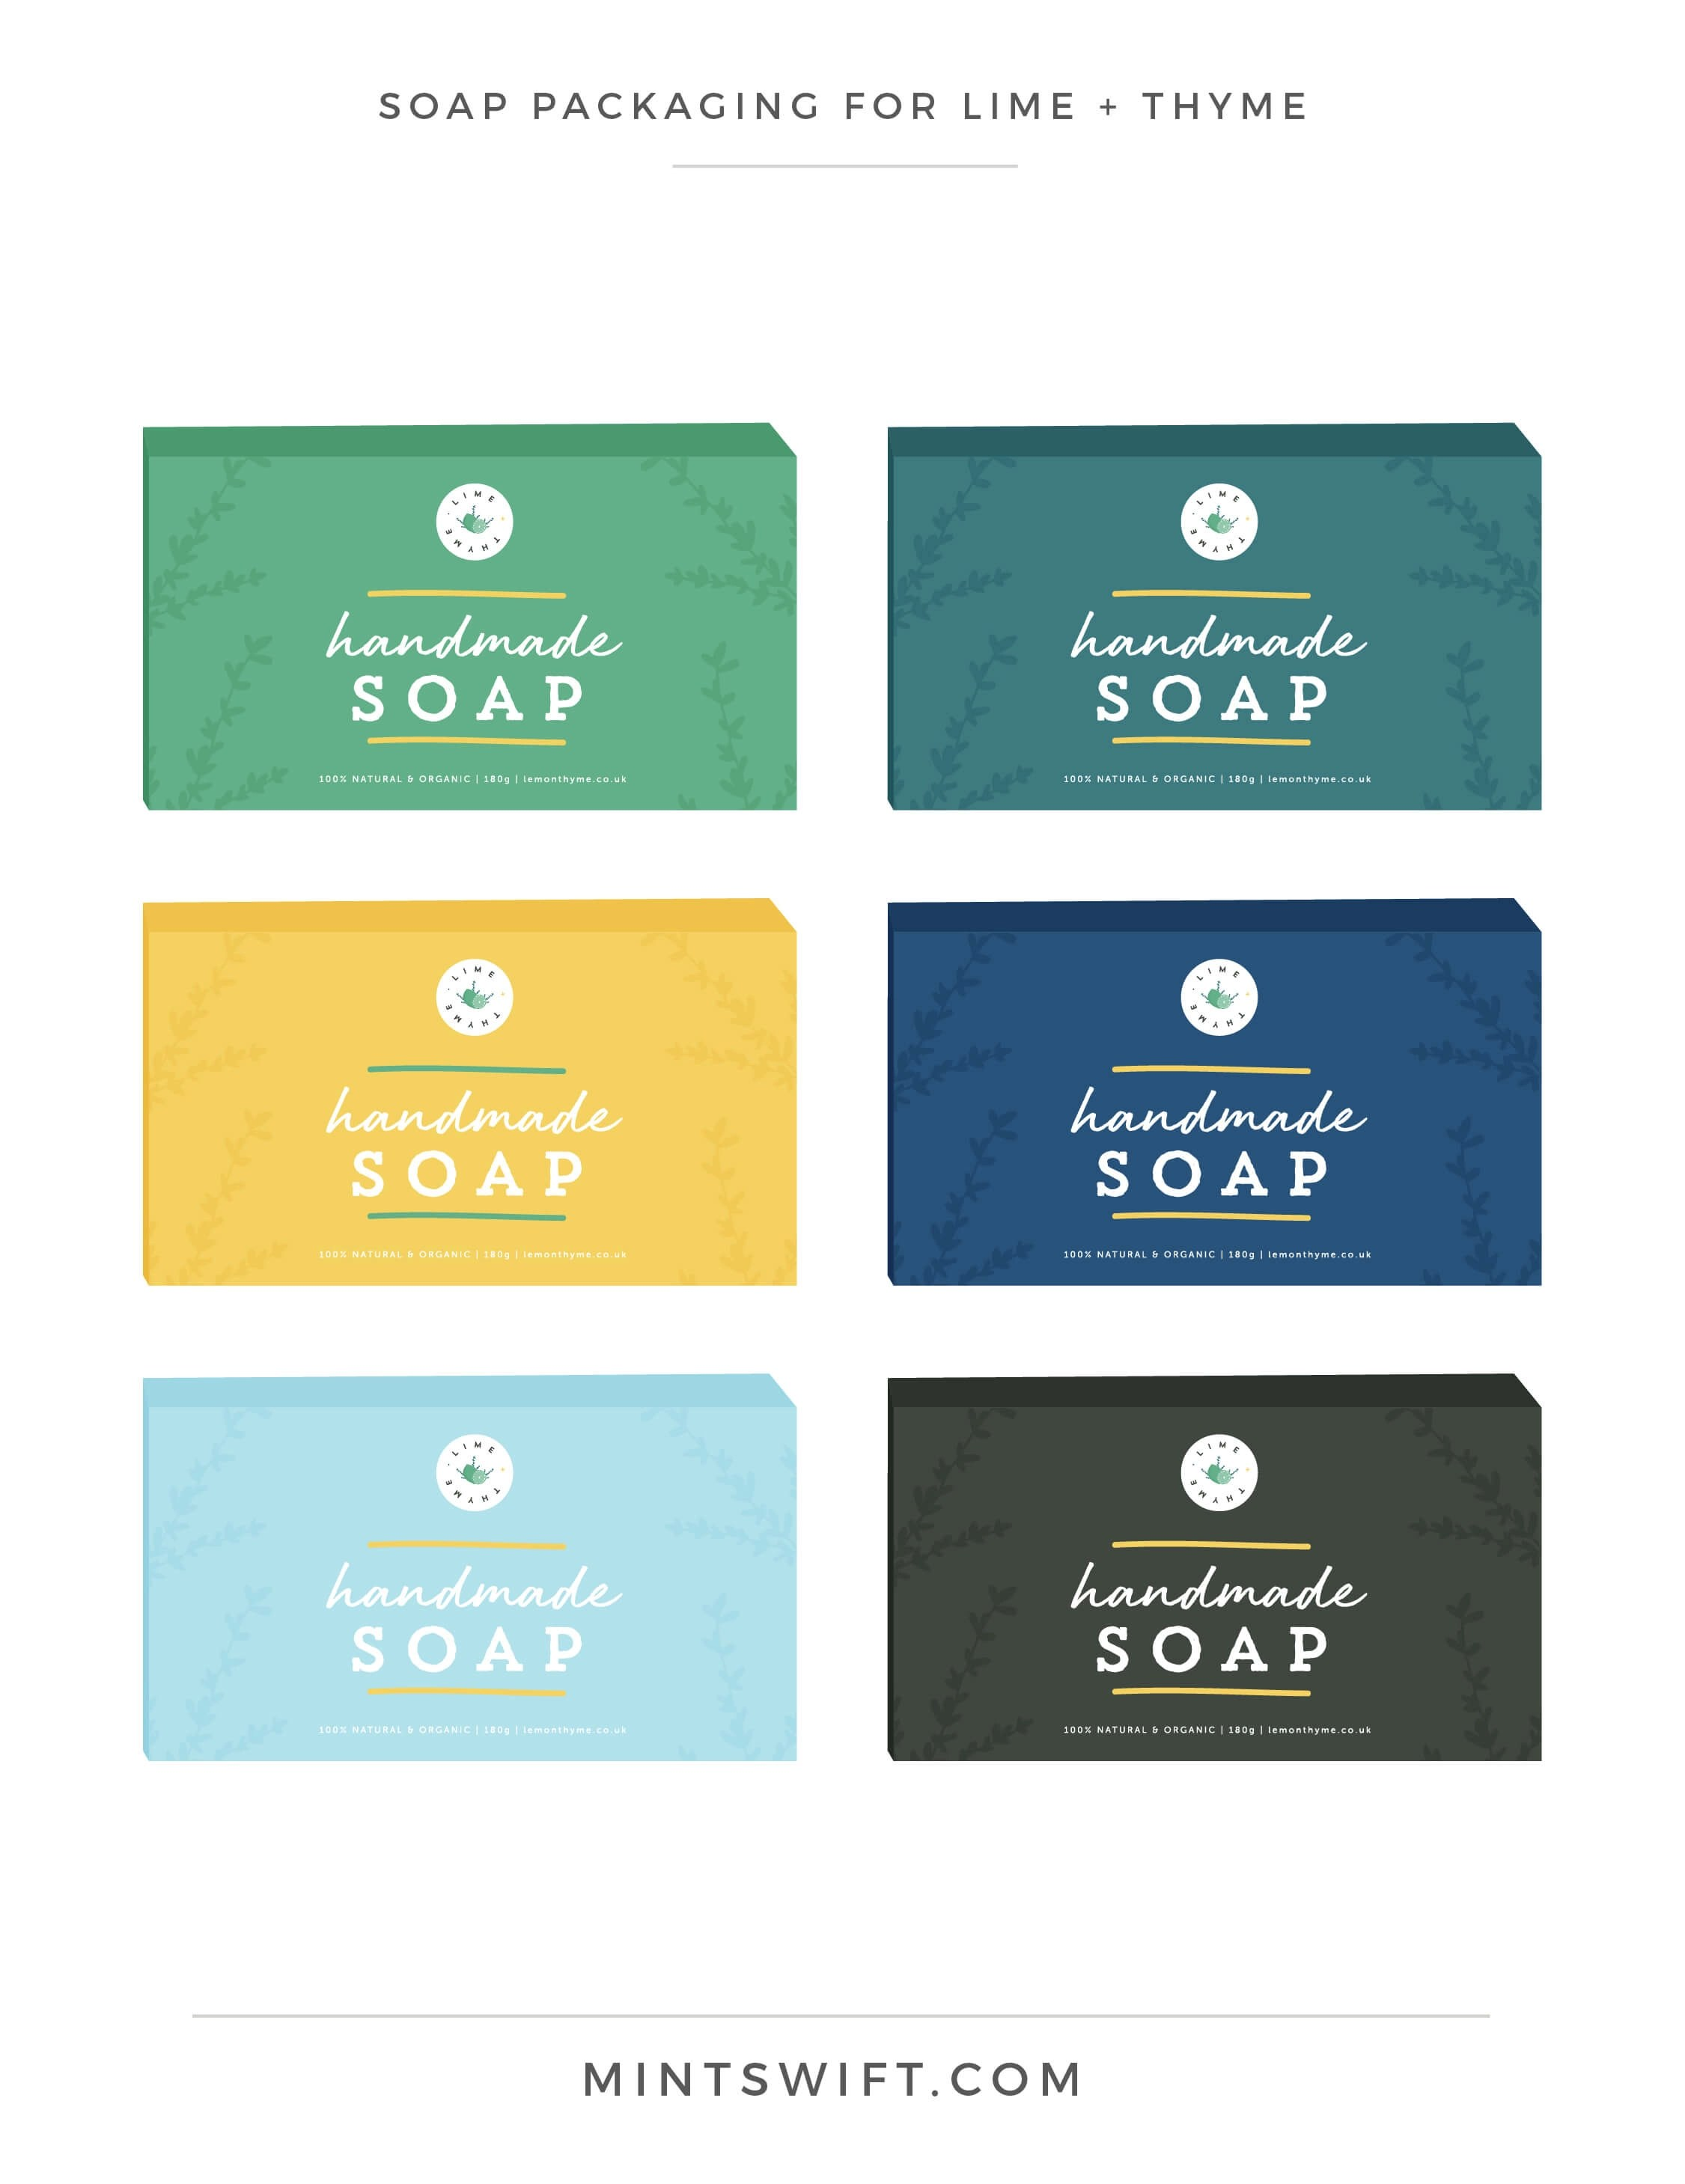 Lime + Thyme - Soap Packaging - Brand & Website Design - MintSwift